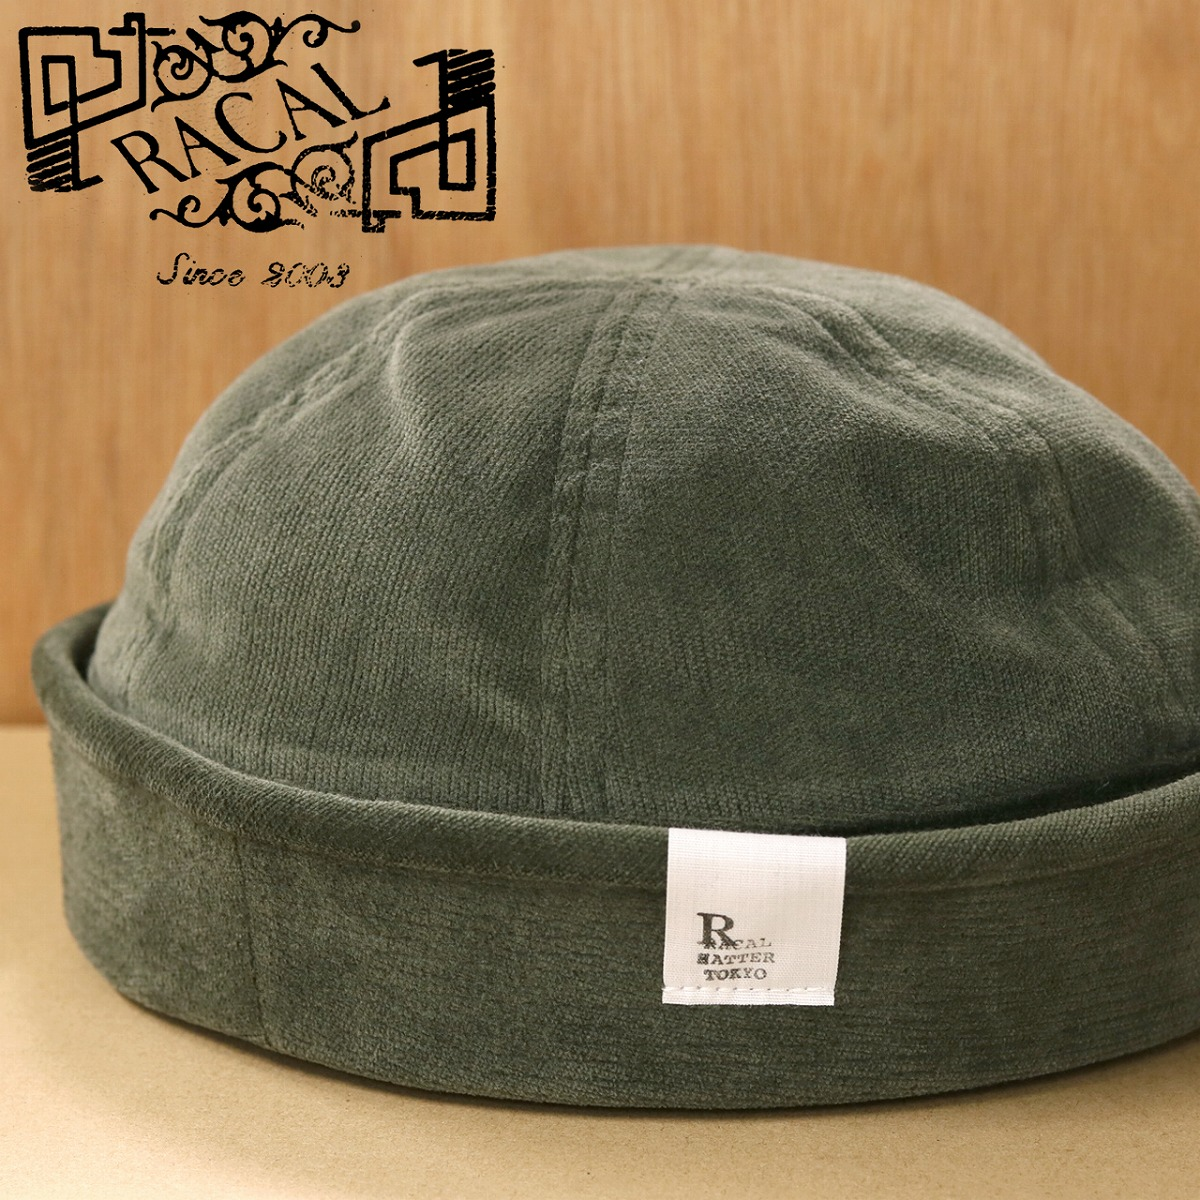 08ccfaf9a5e Shin pull Malin coordinates sailor hat gentleman M L   olive  sailor hat   man hat Christmas gift present in racal spring with the セーラーハットメンズラカル ...